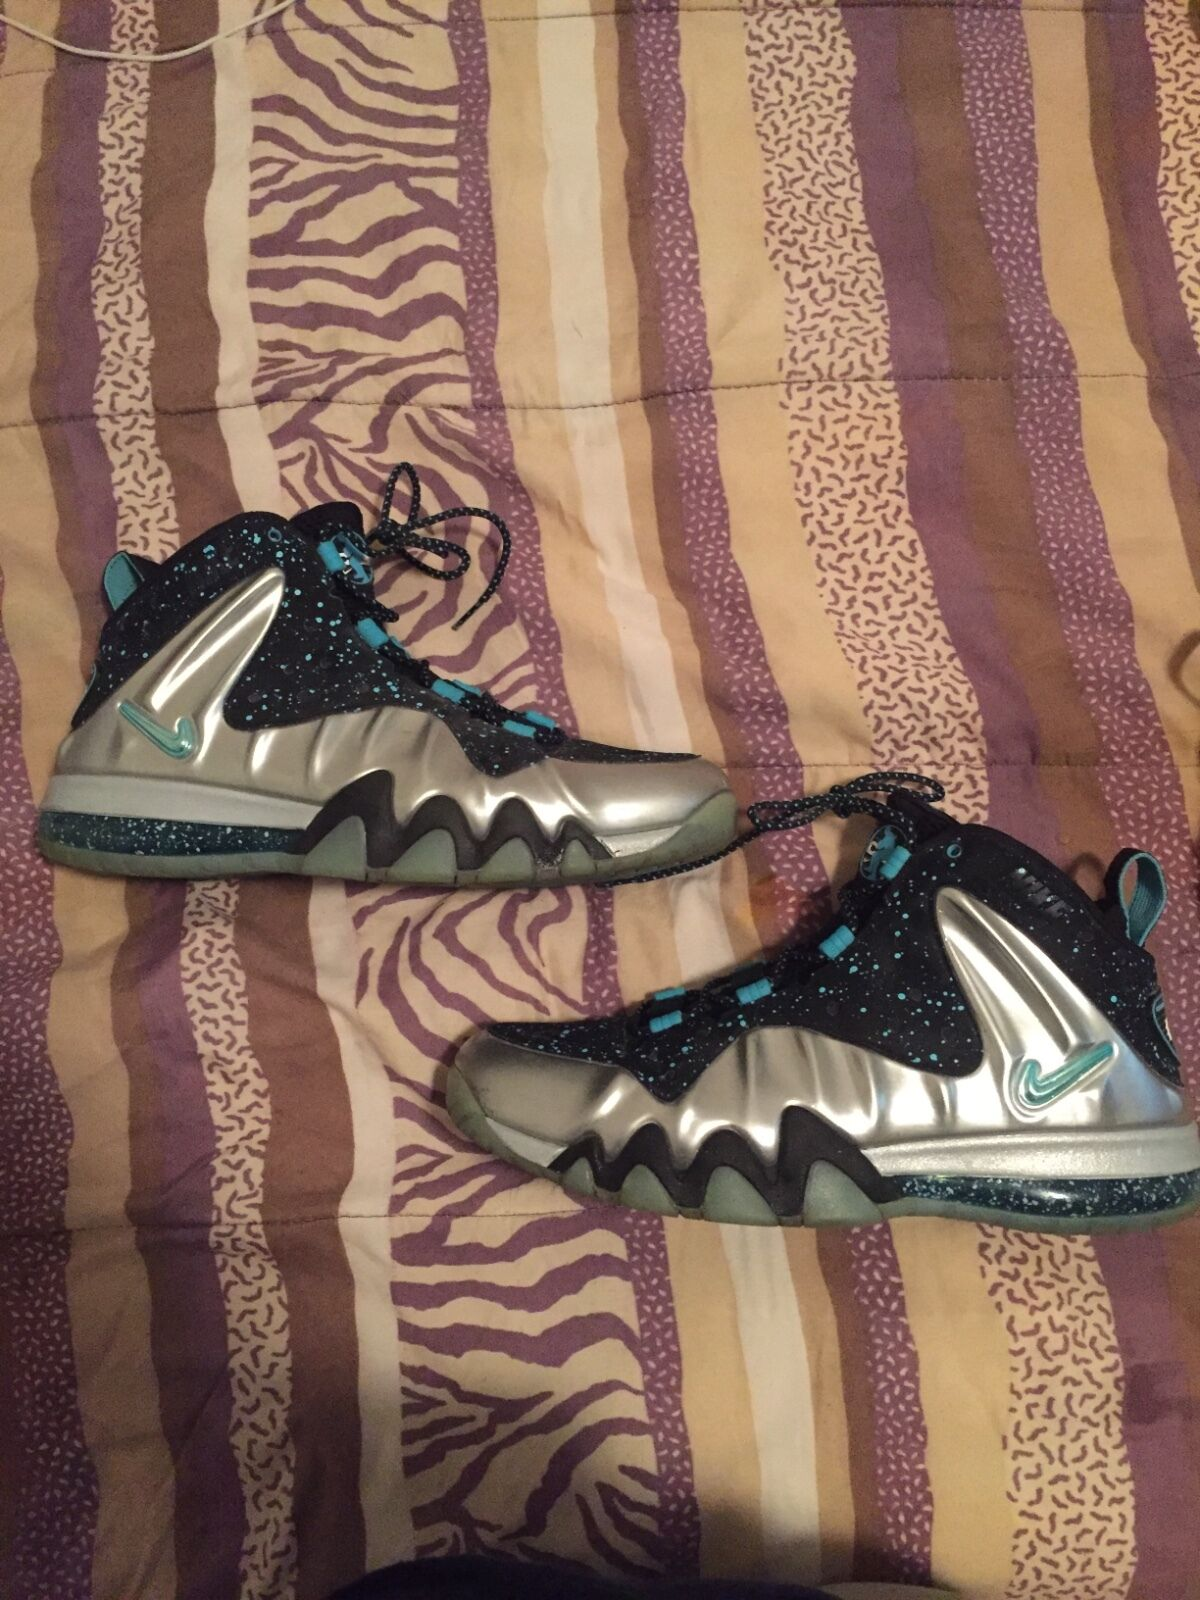 Mens lebron taxi size 13, and Mens size 12 charles barkley foam posite.